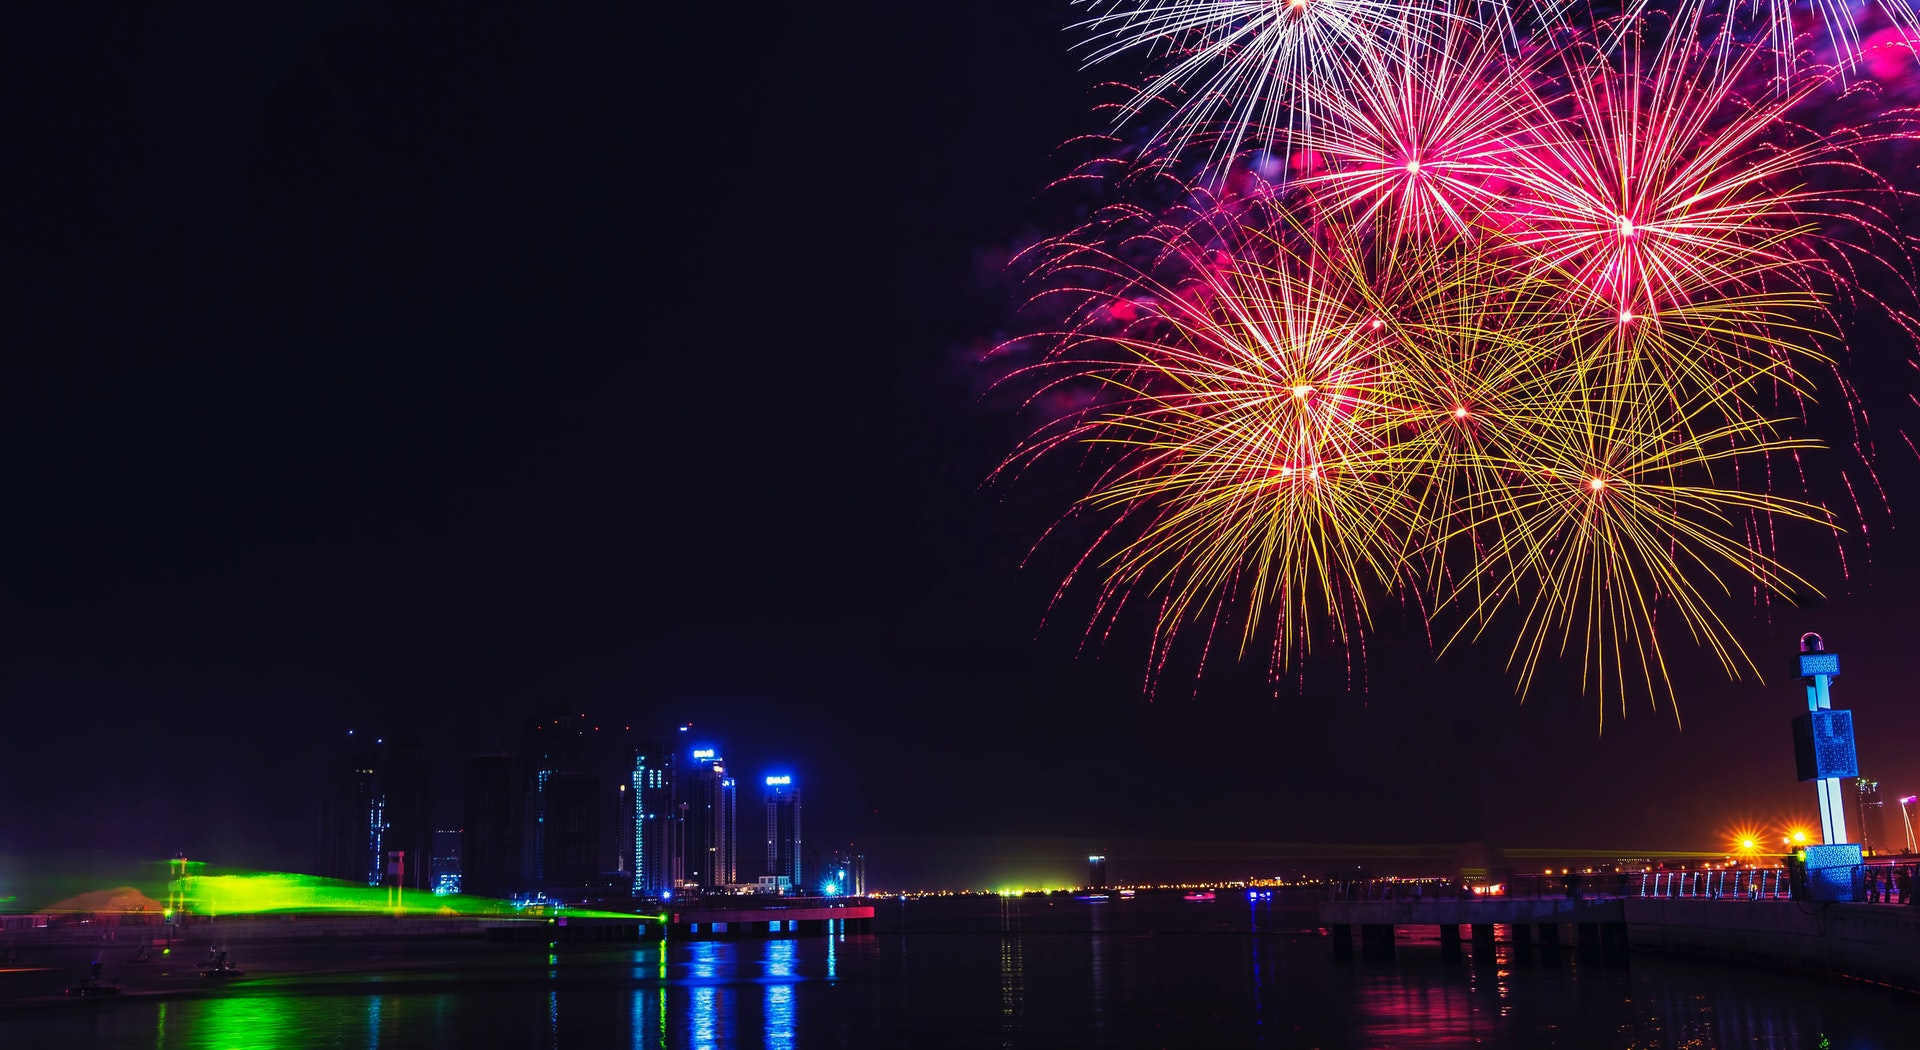 Your Guide To The 11 Best Spots Watch The 2021 Burj Khalifa Fireworks in Dubai